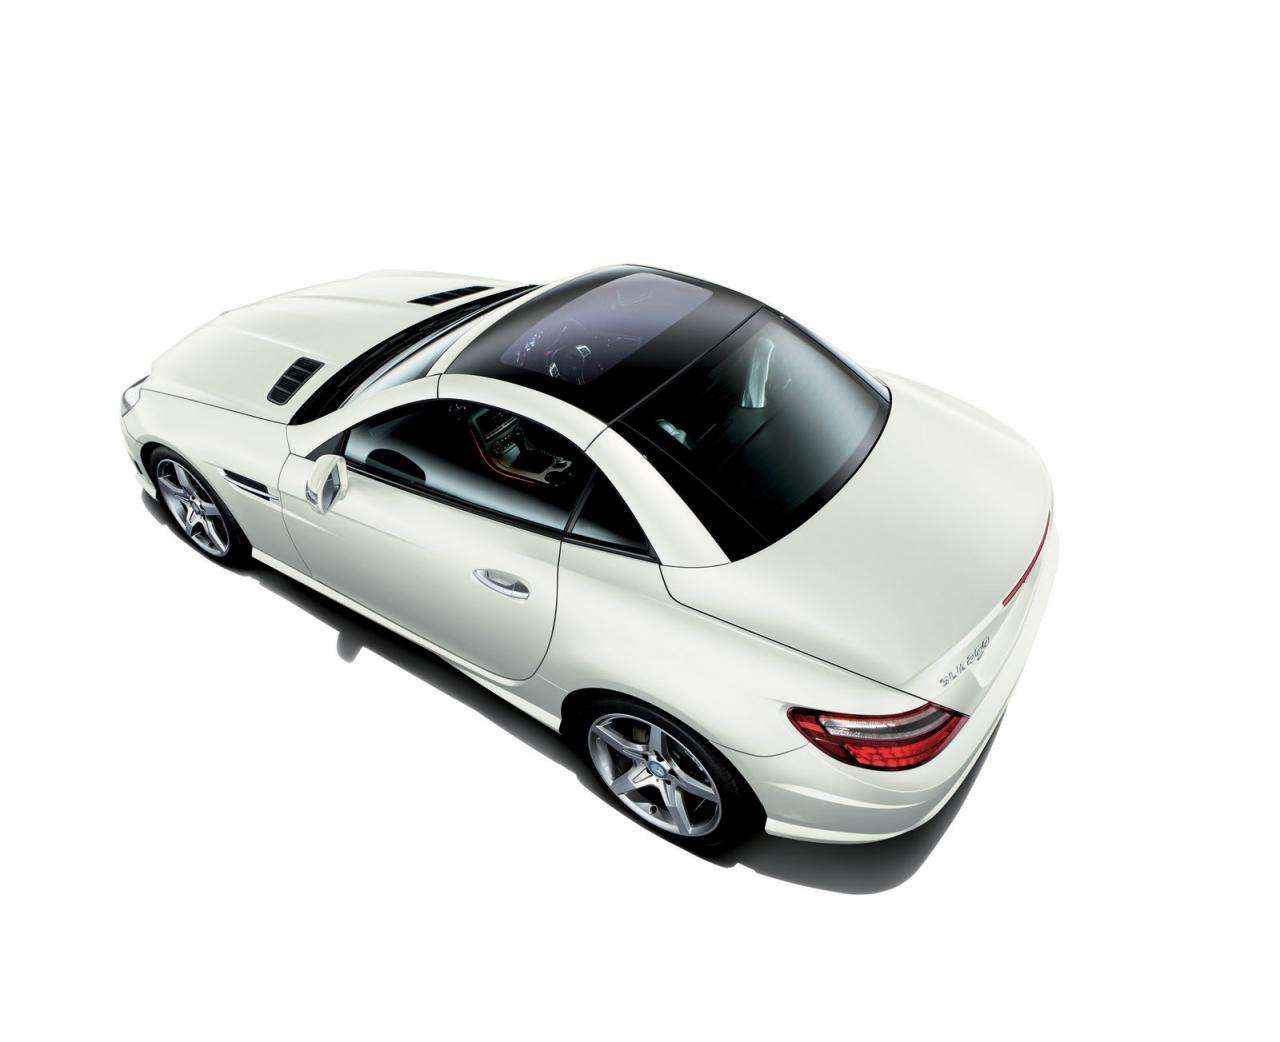 Mercedes SLK 200 Radar Safety Edition